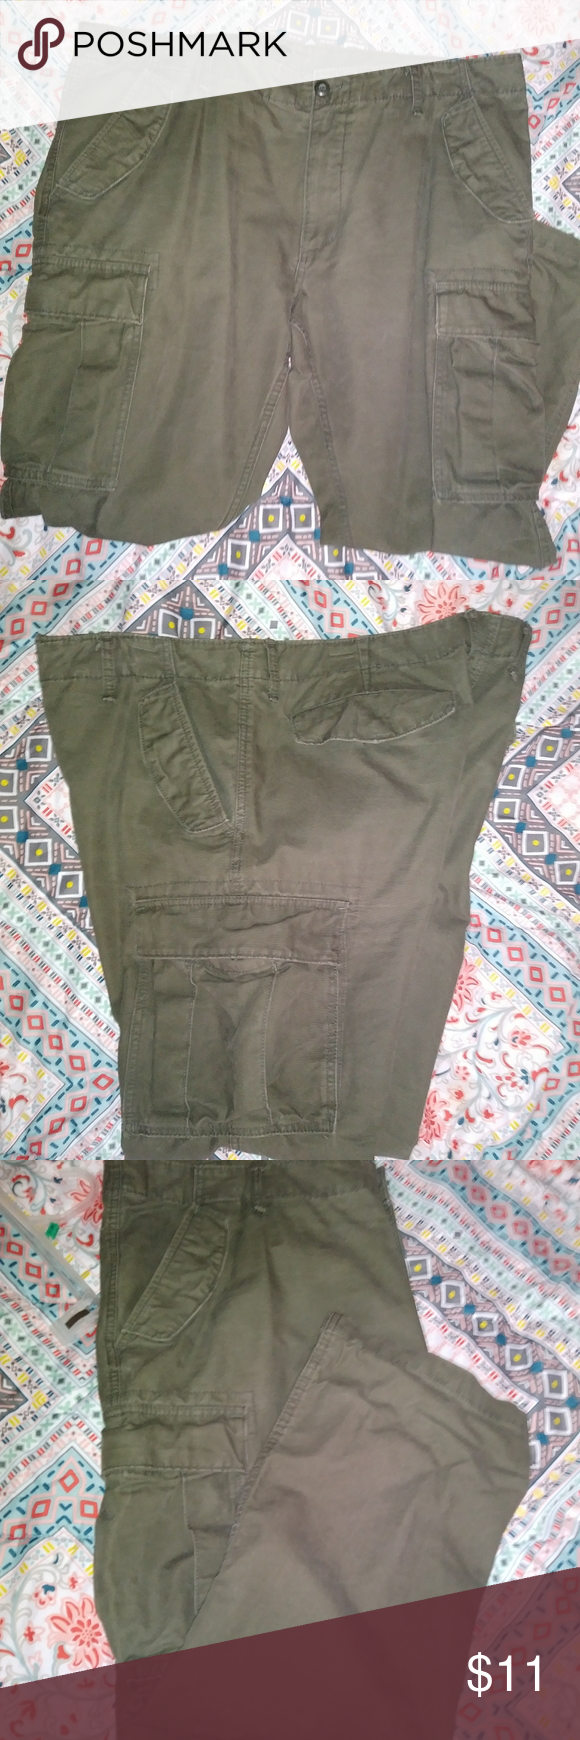 Old Navy Cargo pants Men's size 42×30 Old Navy Cargo pants. USED and in Excelle…